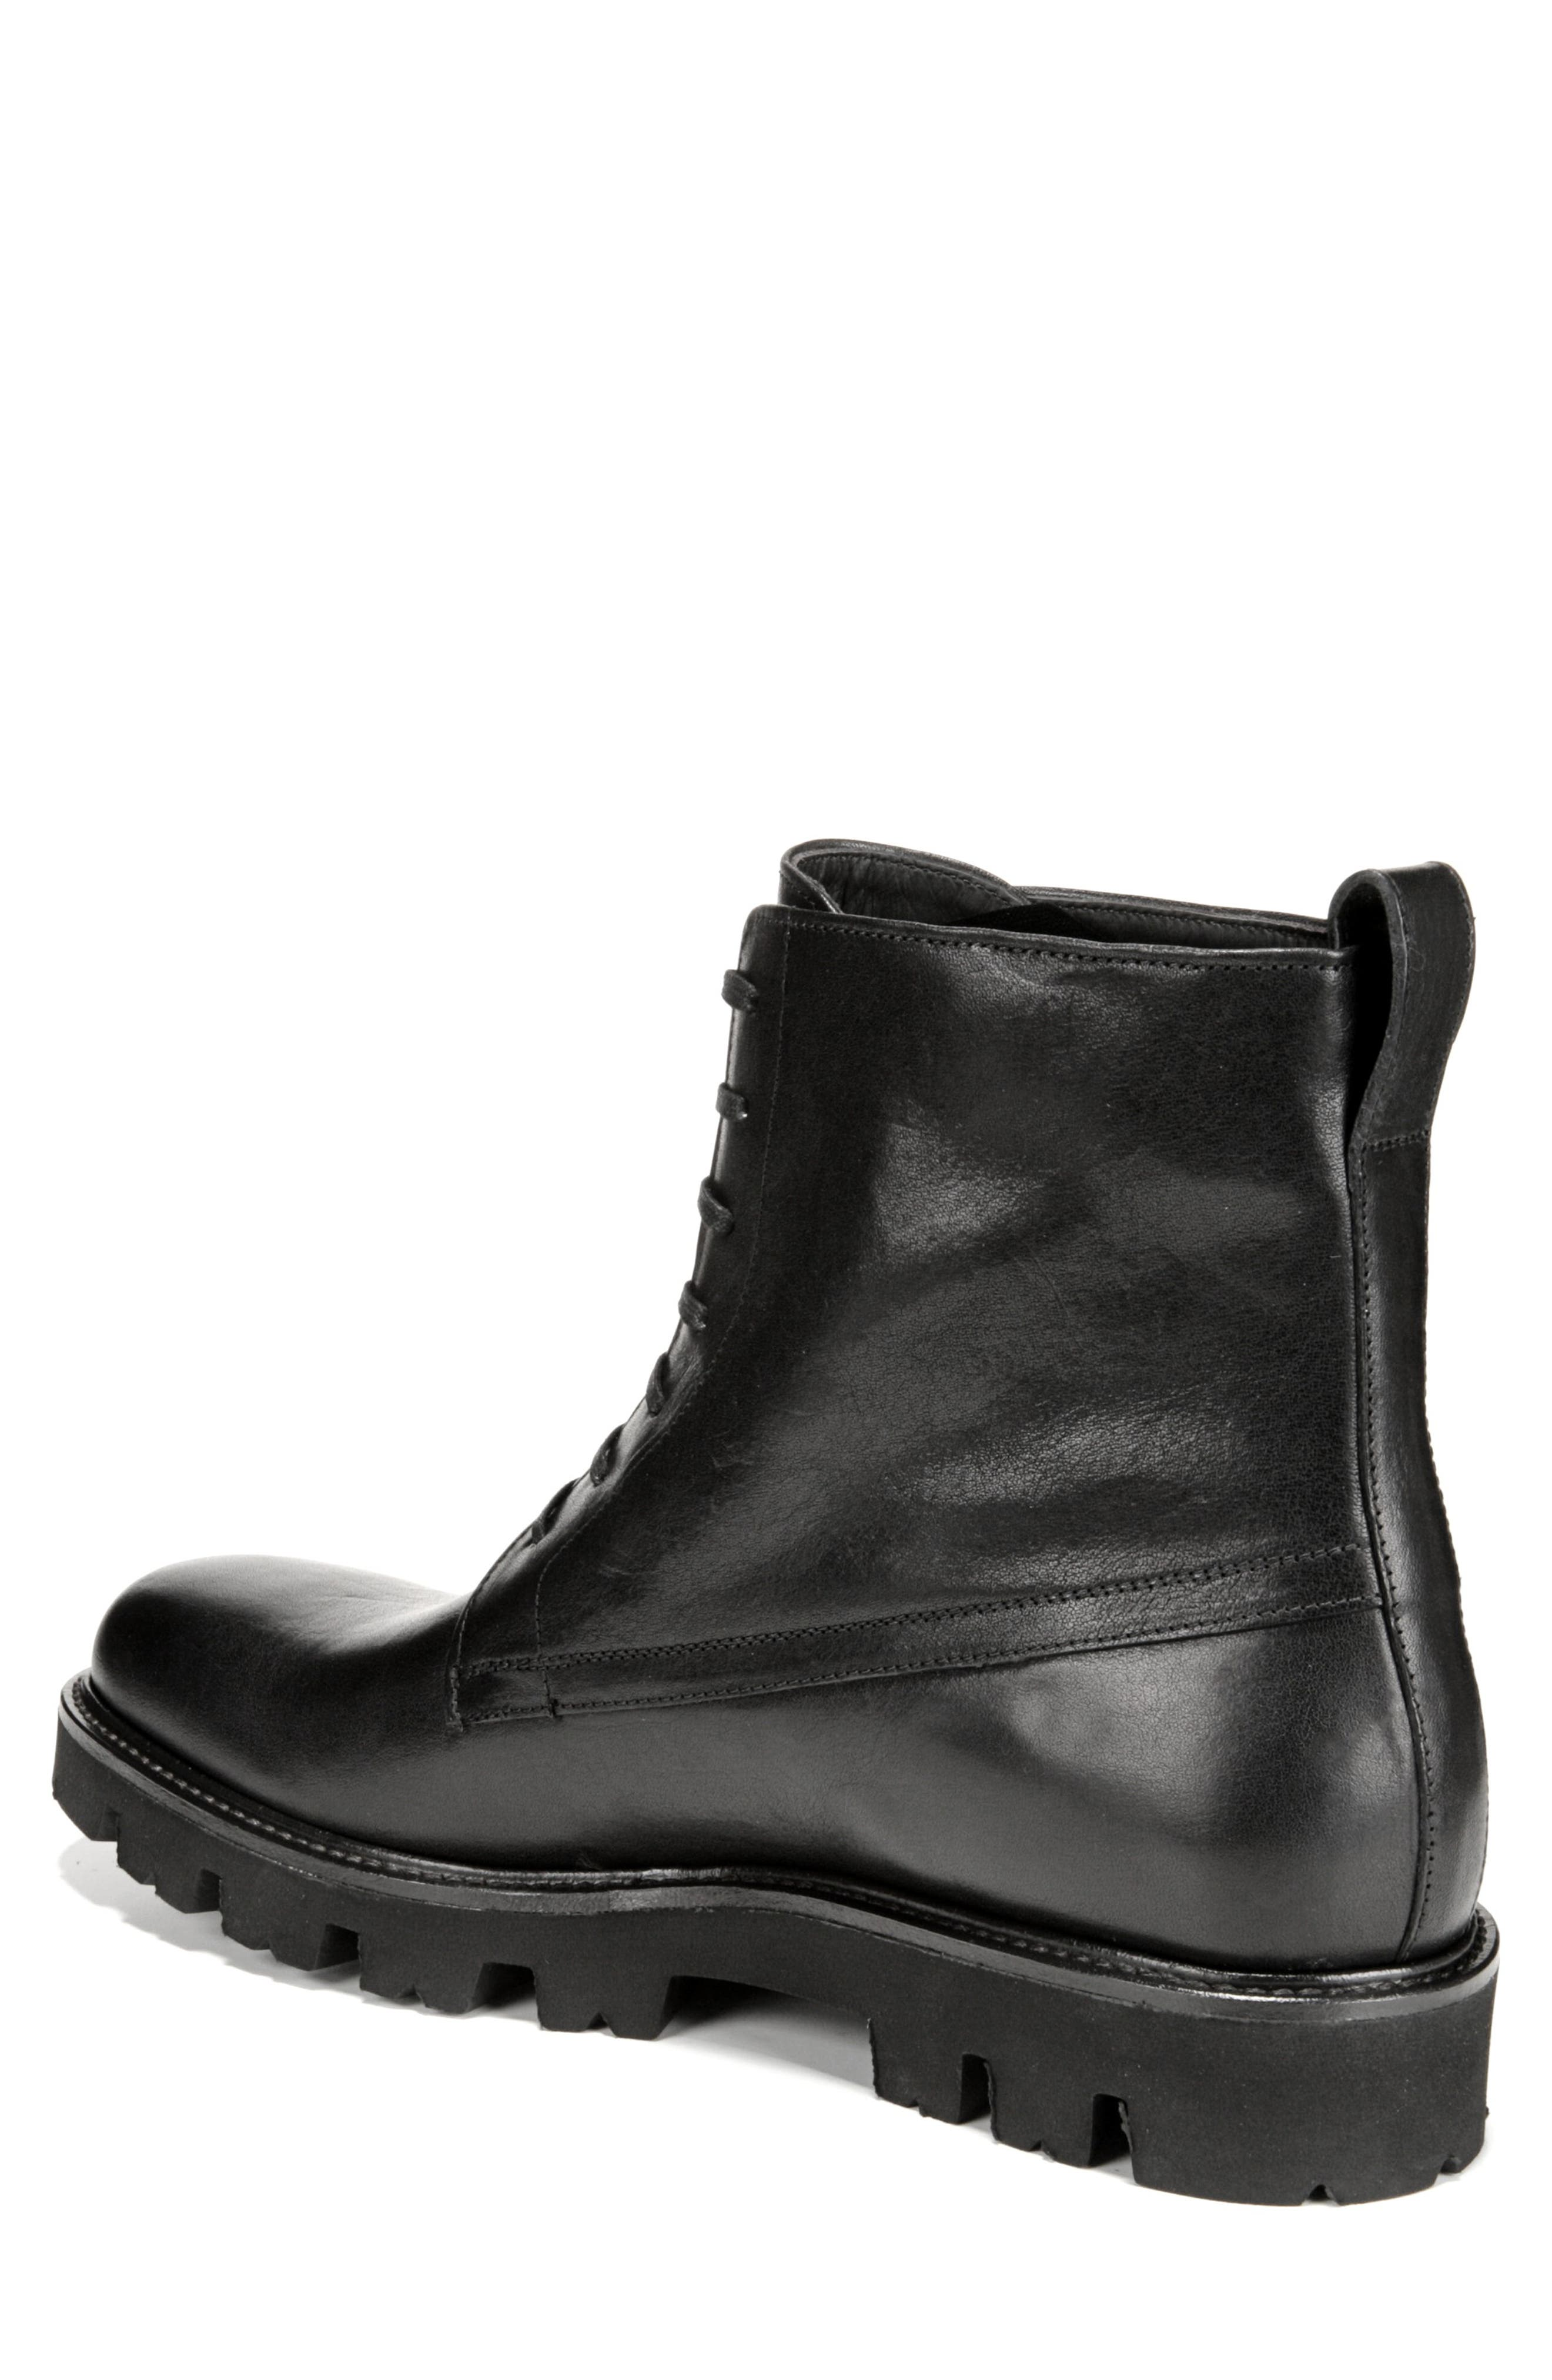 Commander Plain Toe Boot,                             Alternate thumbnail 2, color,                             Black